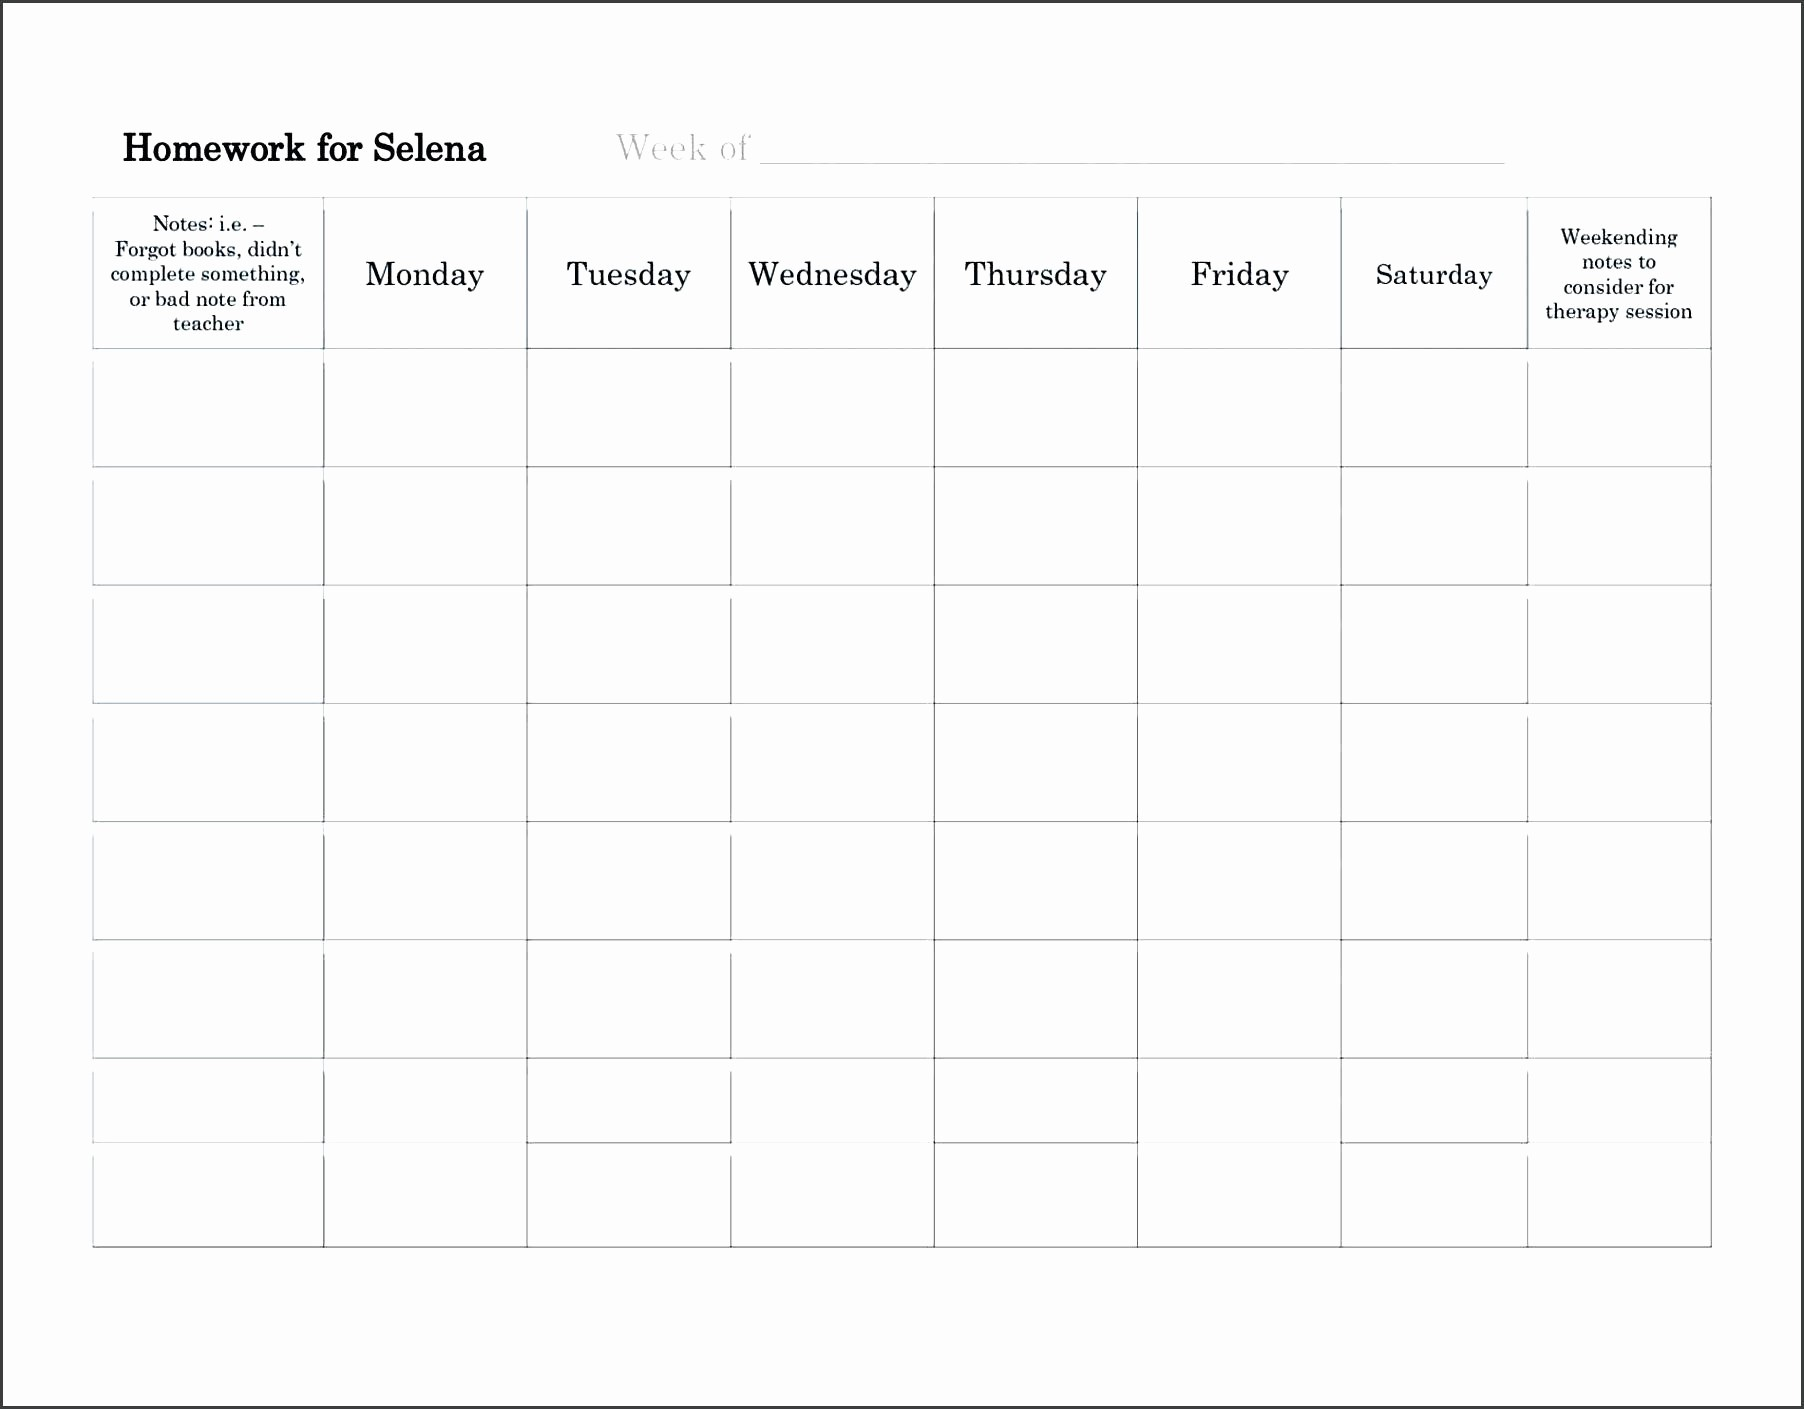 Weekly Homework assignment Sheet Template Awesome assignment Sheet Template for Students Gallery